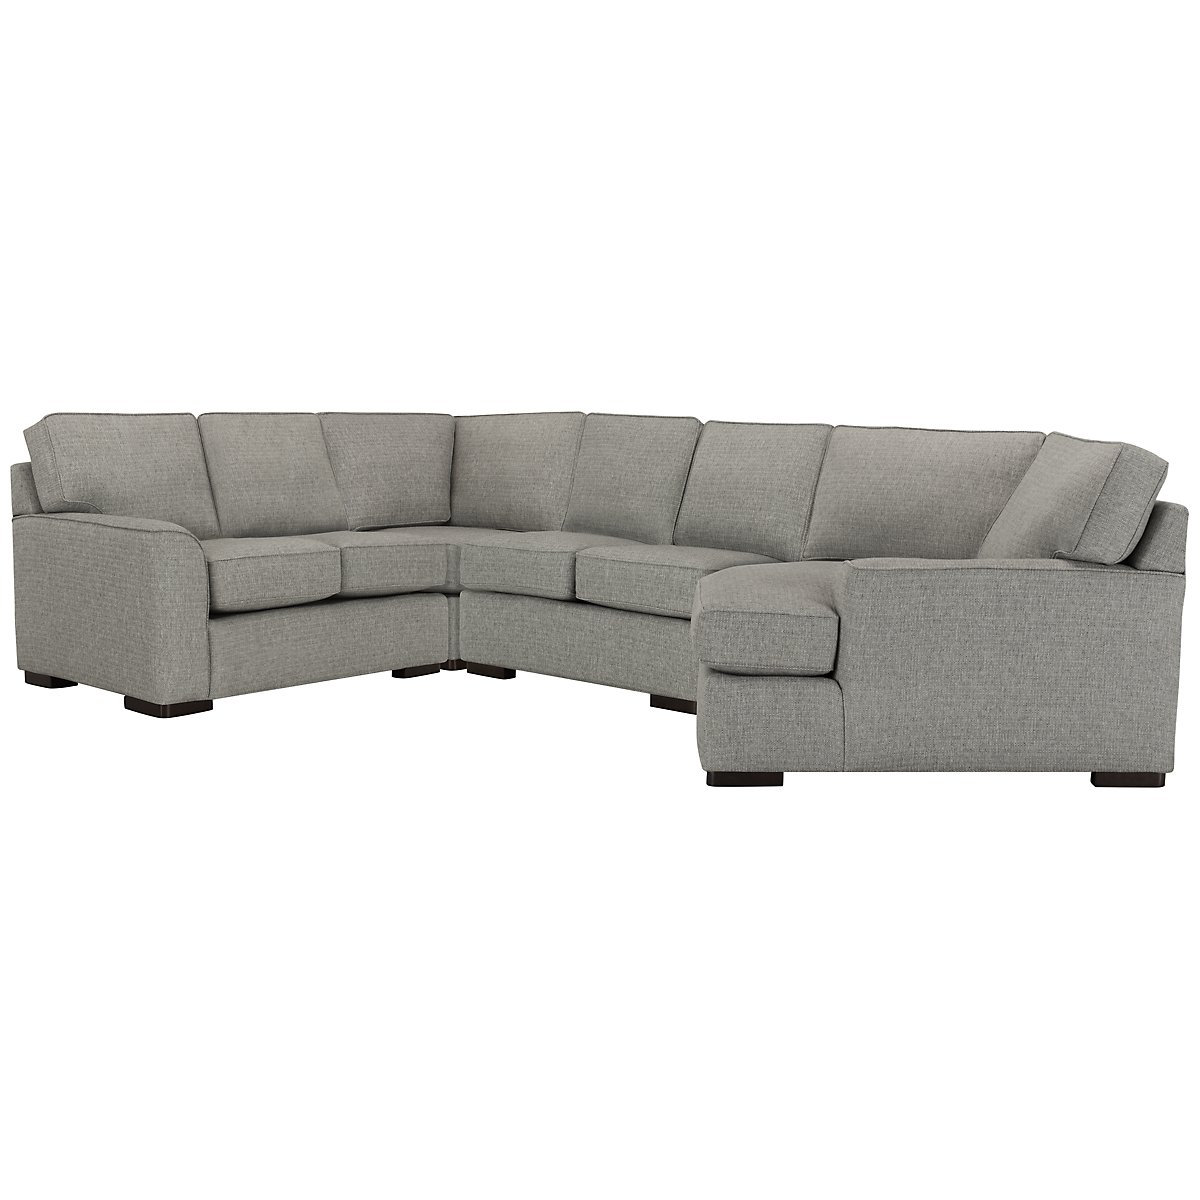 City furniture austin gray fabric small right cuddler for Small sectional sofa with cuddler